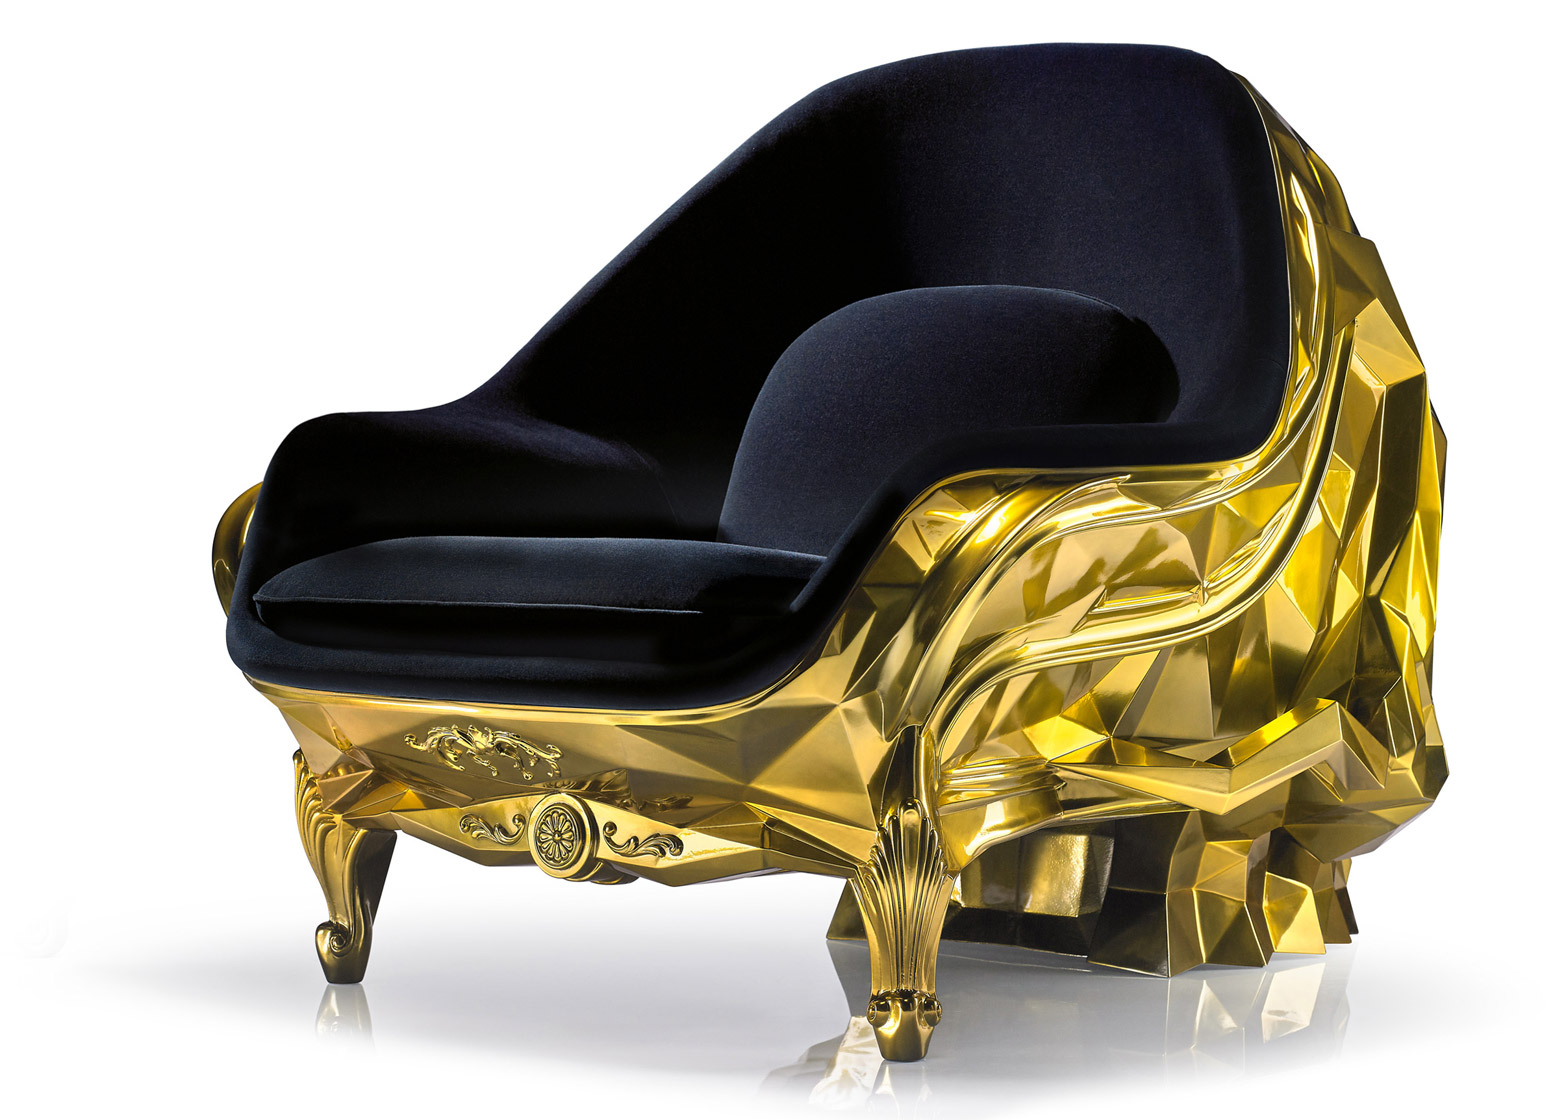 Harow\'s gold-plated skull armchair carries a $500k price tag